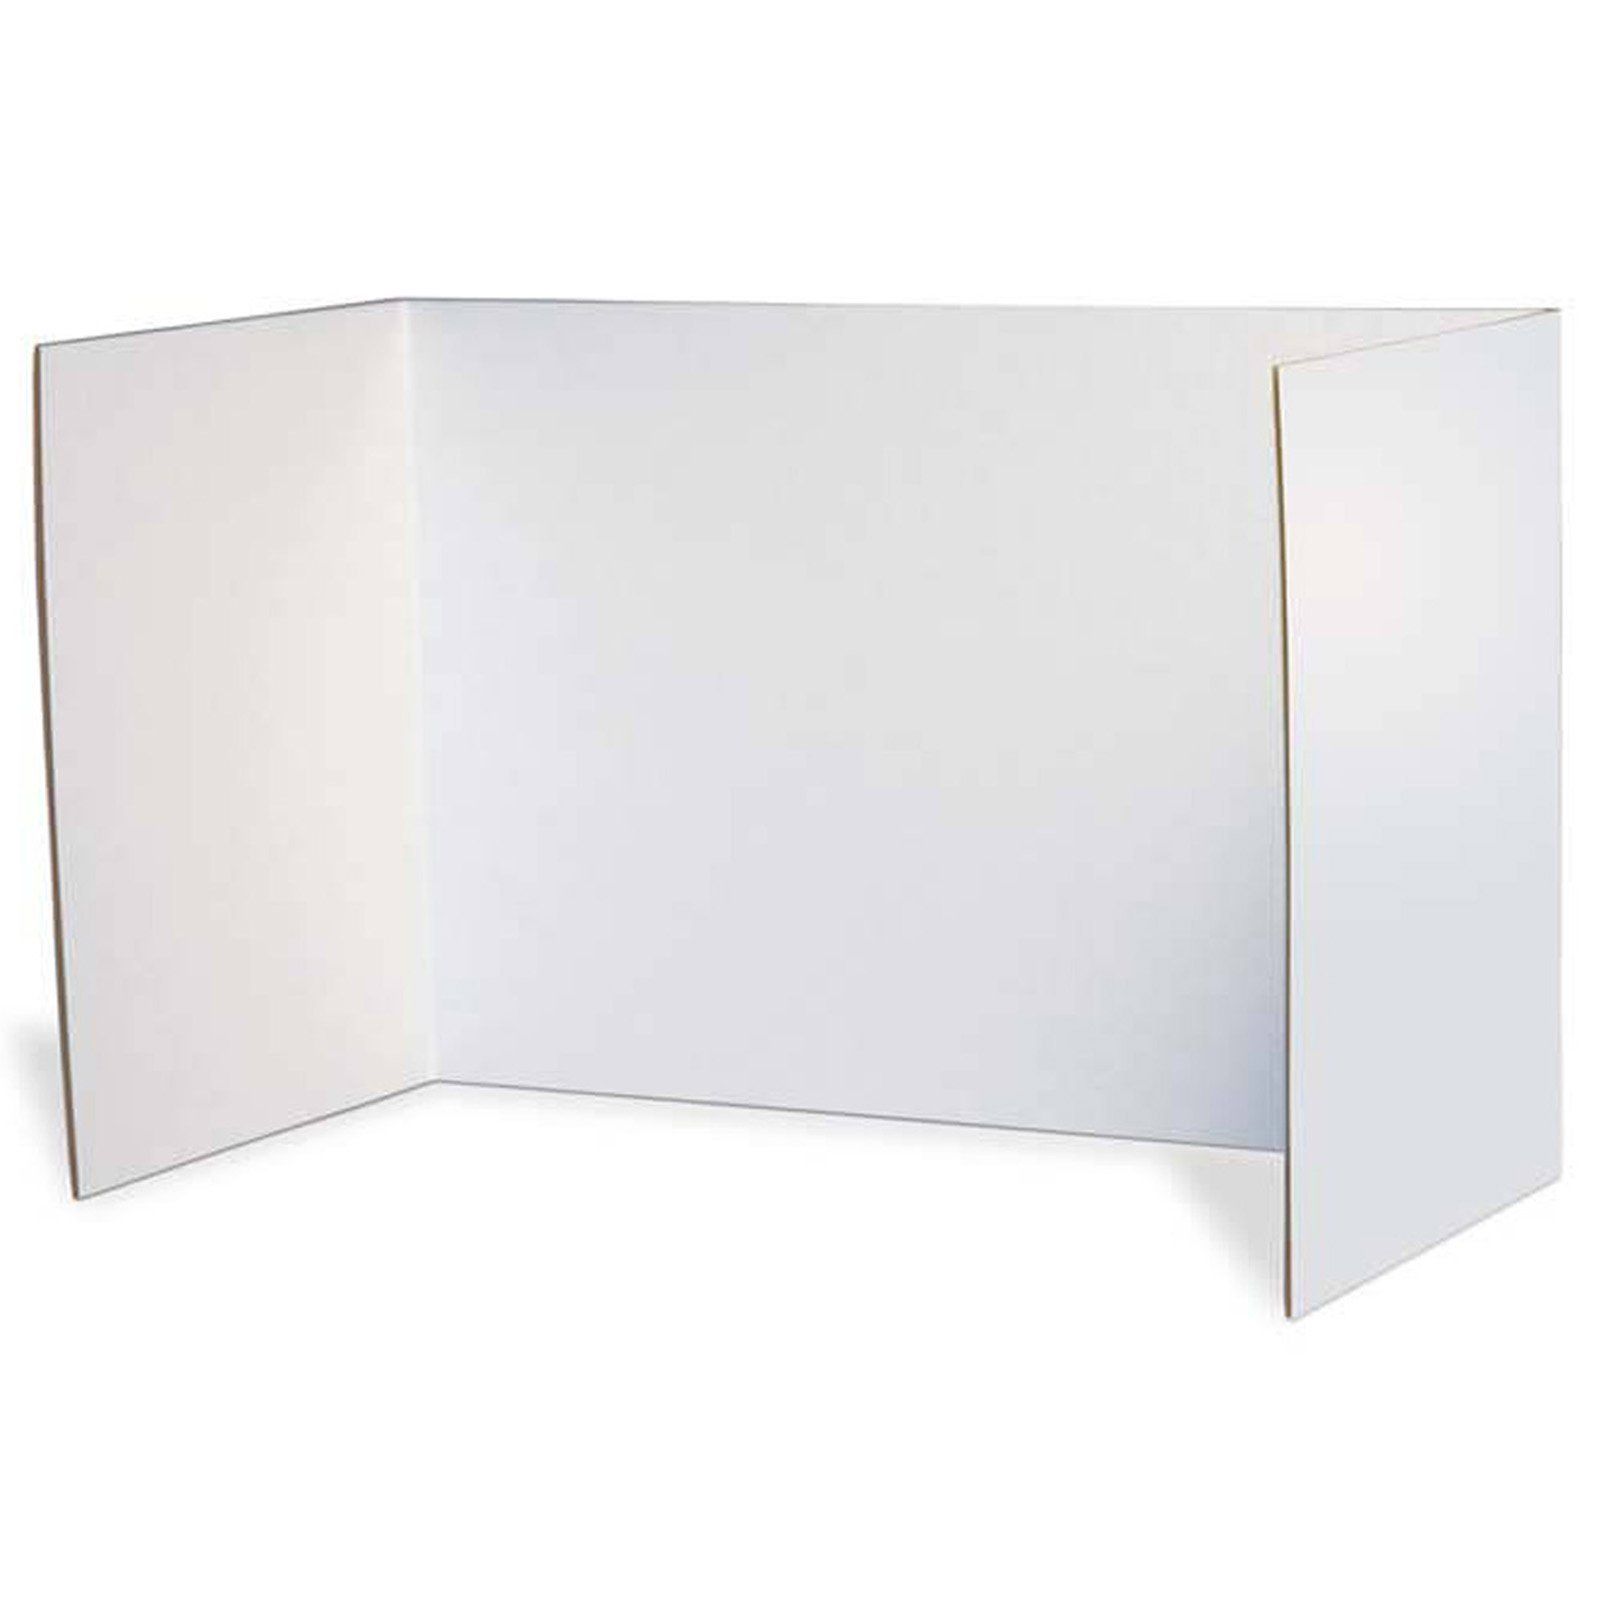 Pacon PAC3782BN Privacy Boards, White, 48'' x 16'', 4 Per Pack, 2 Packs by PACON